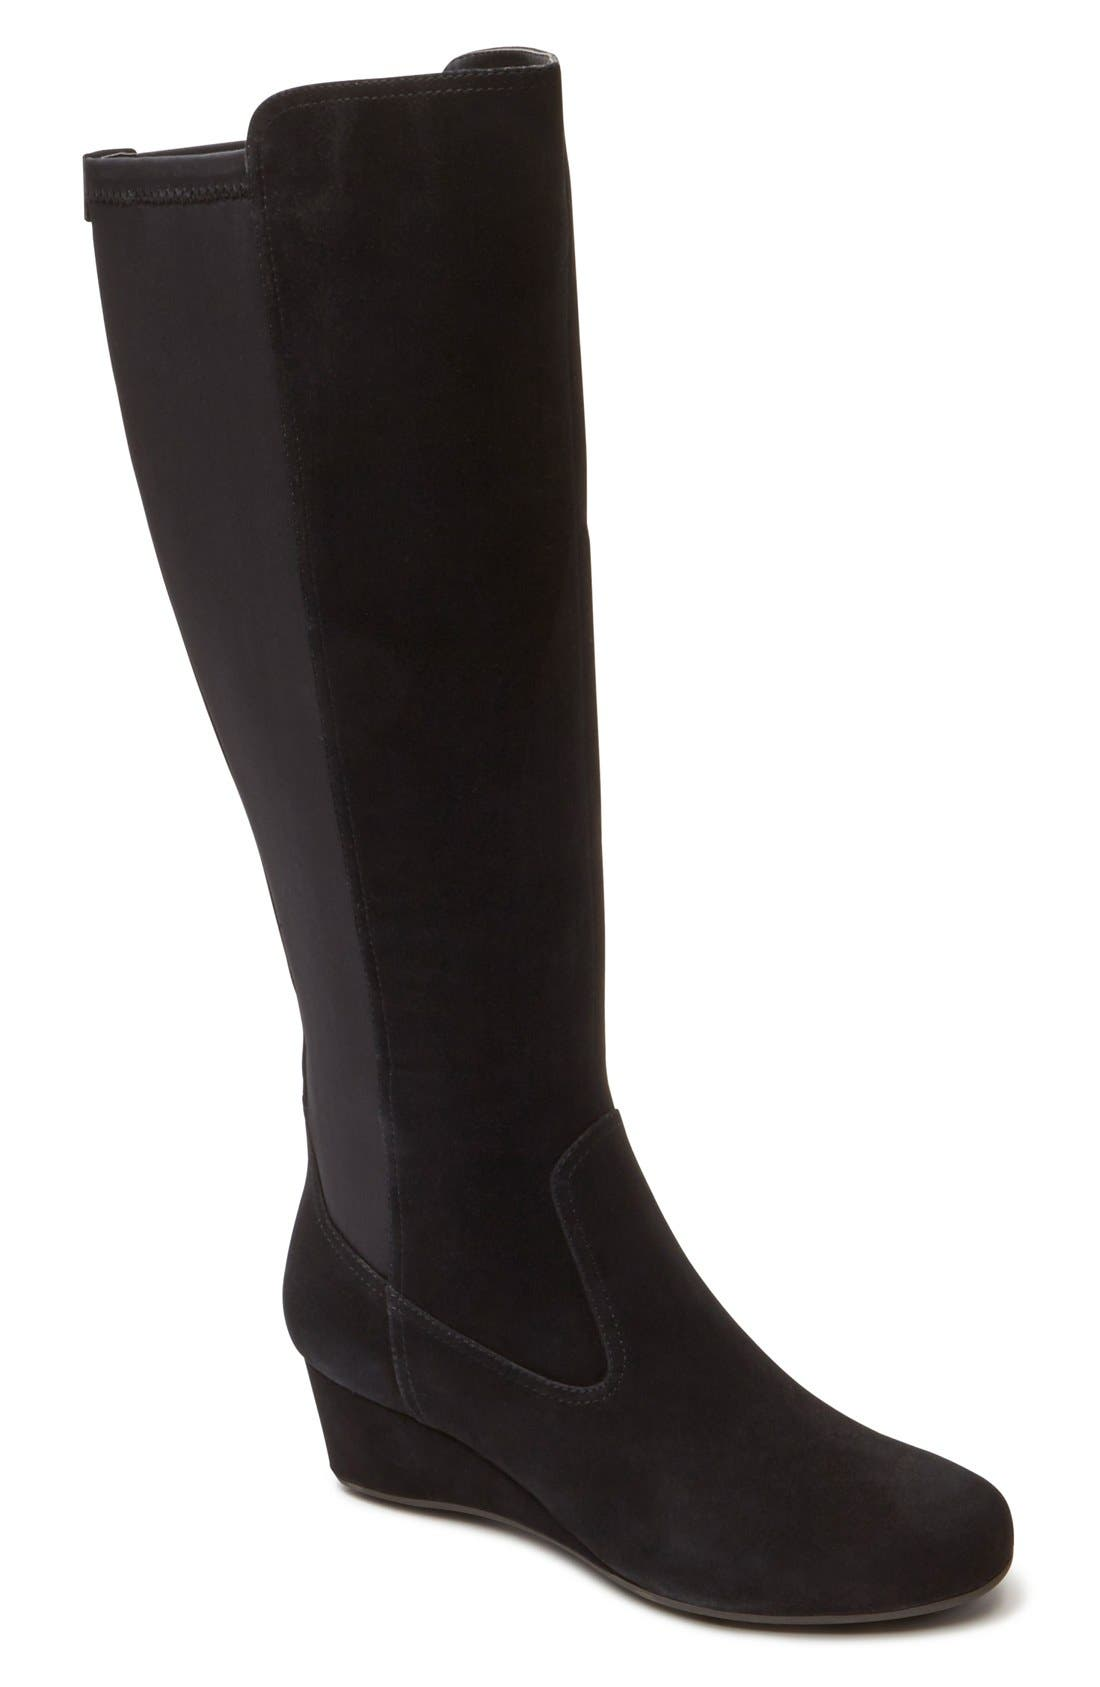 rockport total motion knee high wedge boot wide